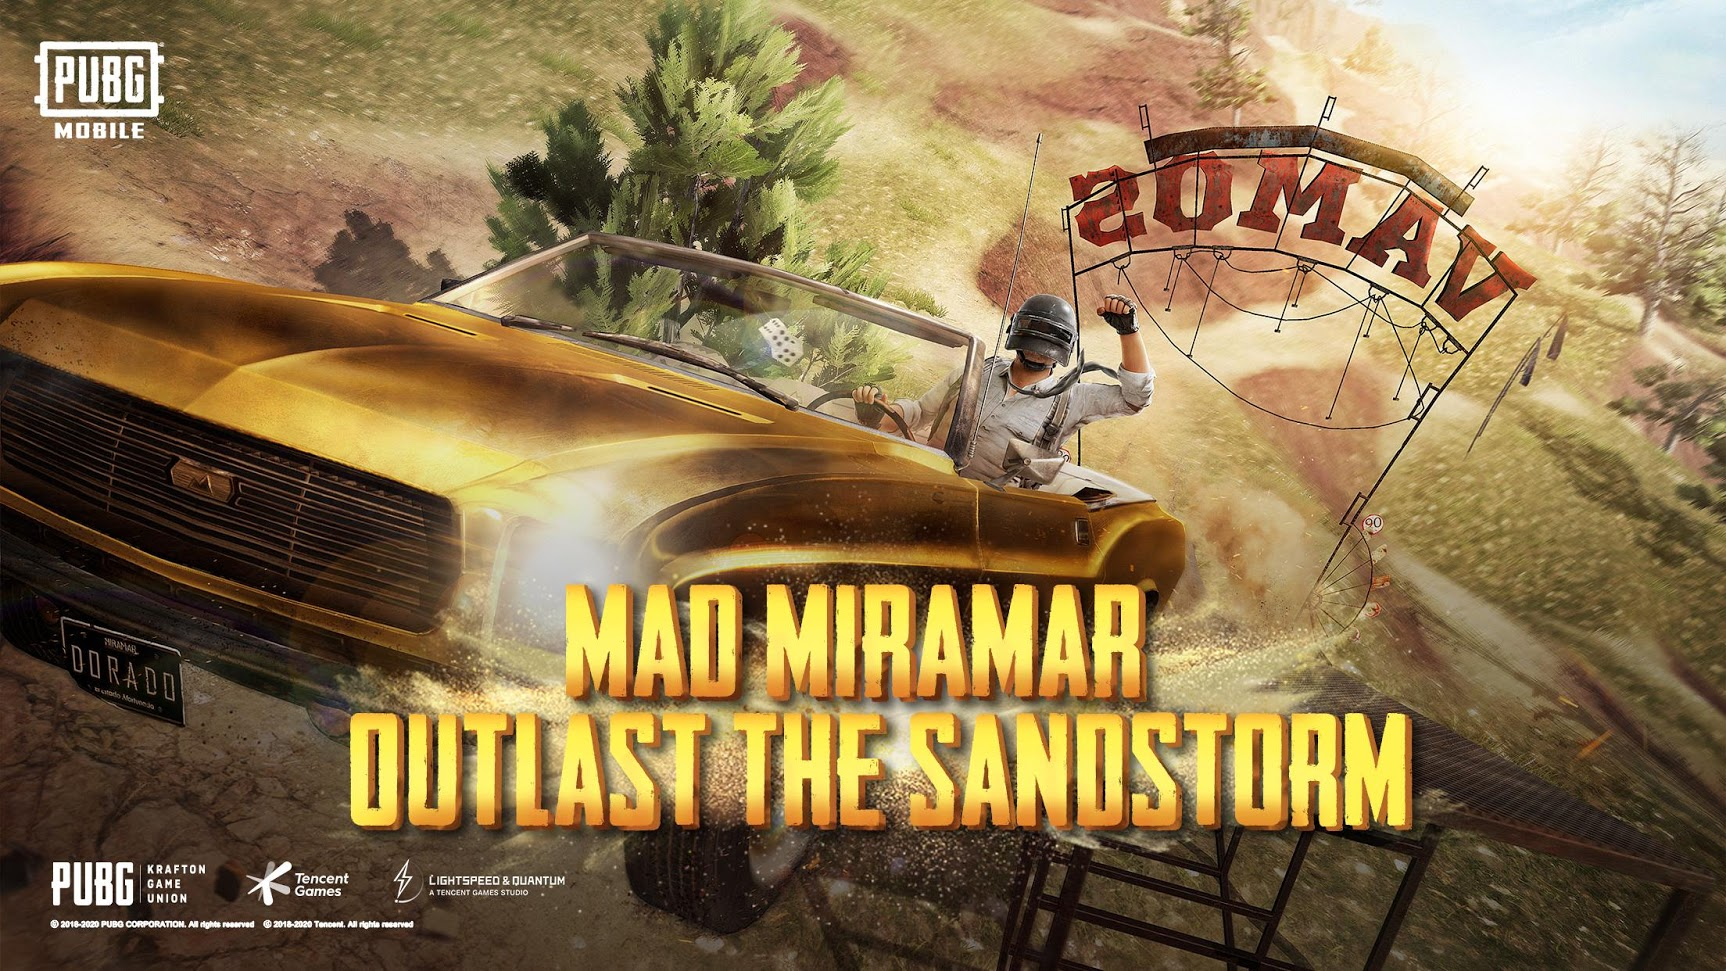 PUBG Mobile v0.18 Rolling Out with Mad Miramar, Cheer Park, and More